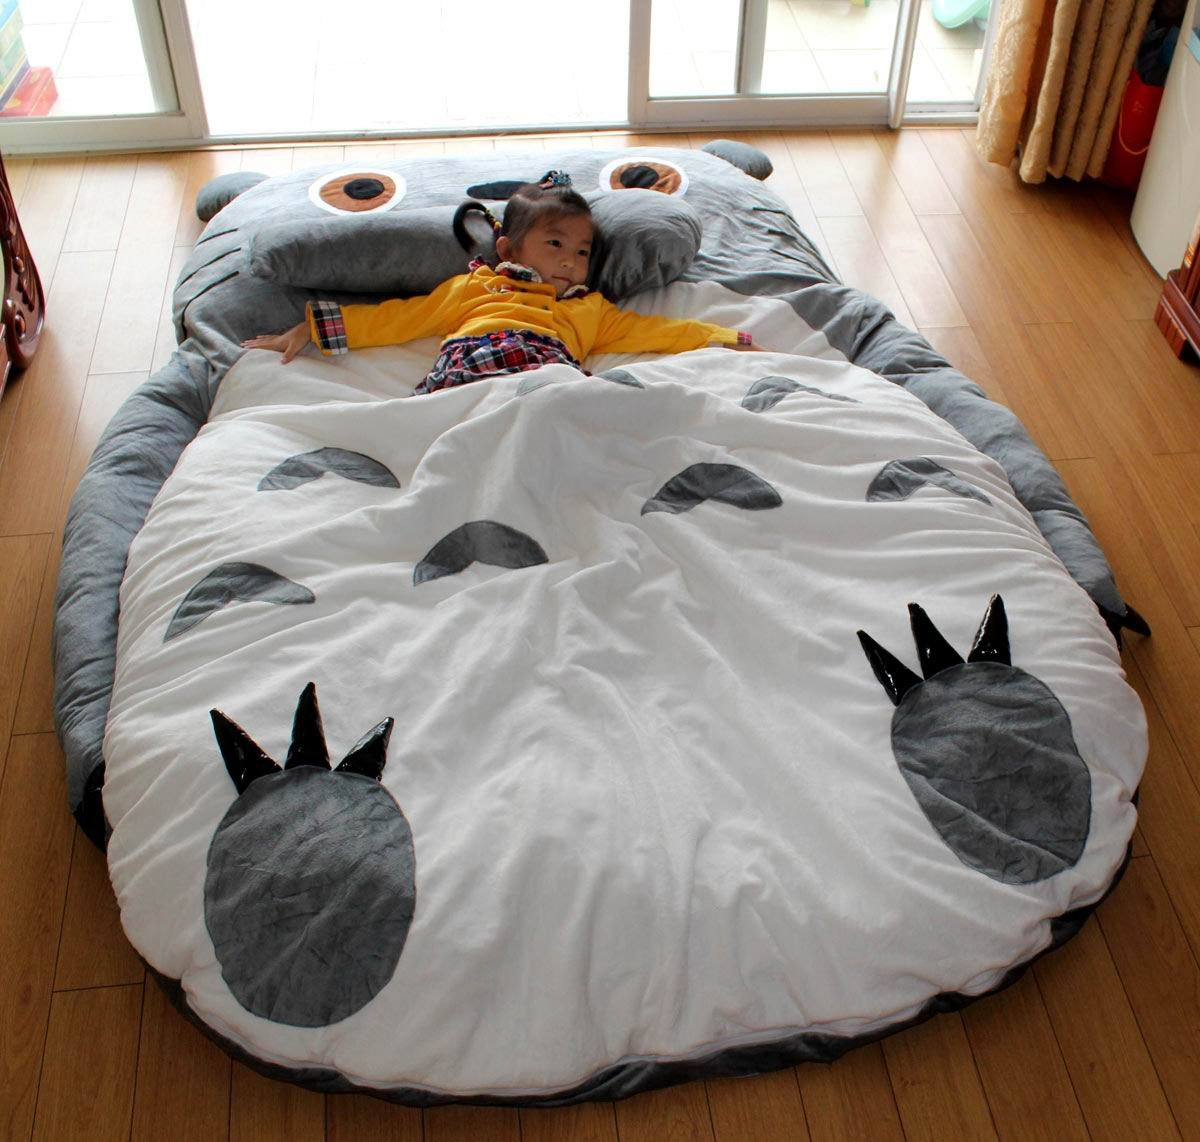 Totoro Double bed Totoro bed Totoro sleeping bag Totoro Design bed Large  size...  Amazon.ca  Home   Kitchen 533fdde9f